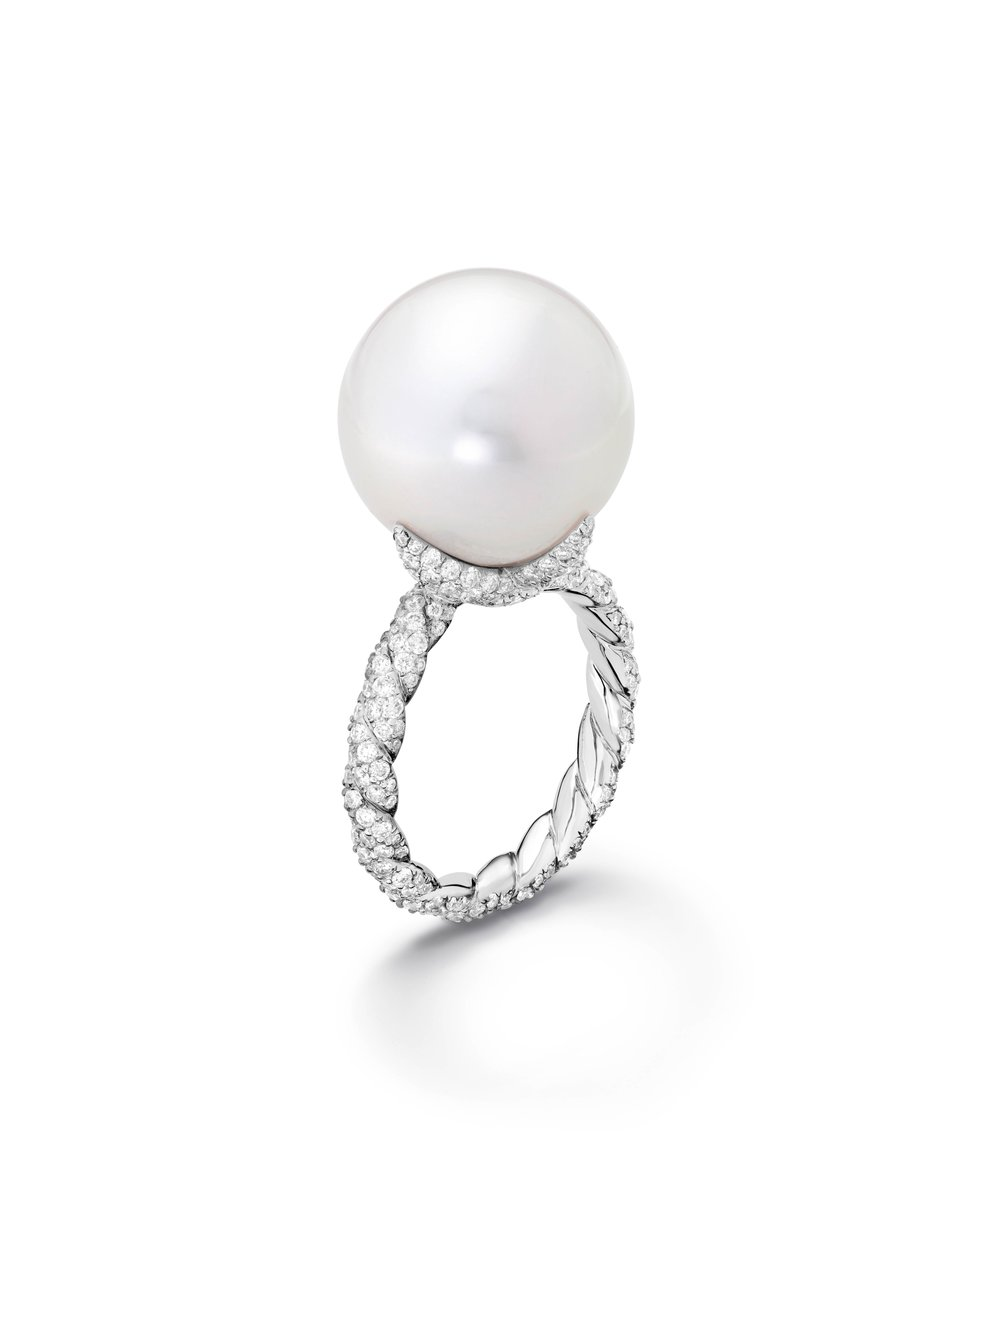 High Jewellery Pearl and Diamond Twist Prong in 750 White Gold Ring by David Yurman